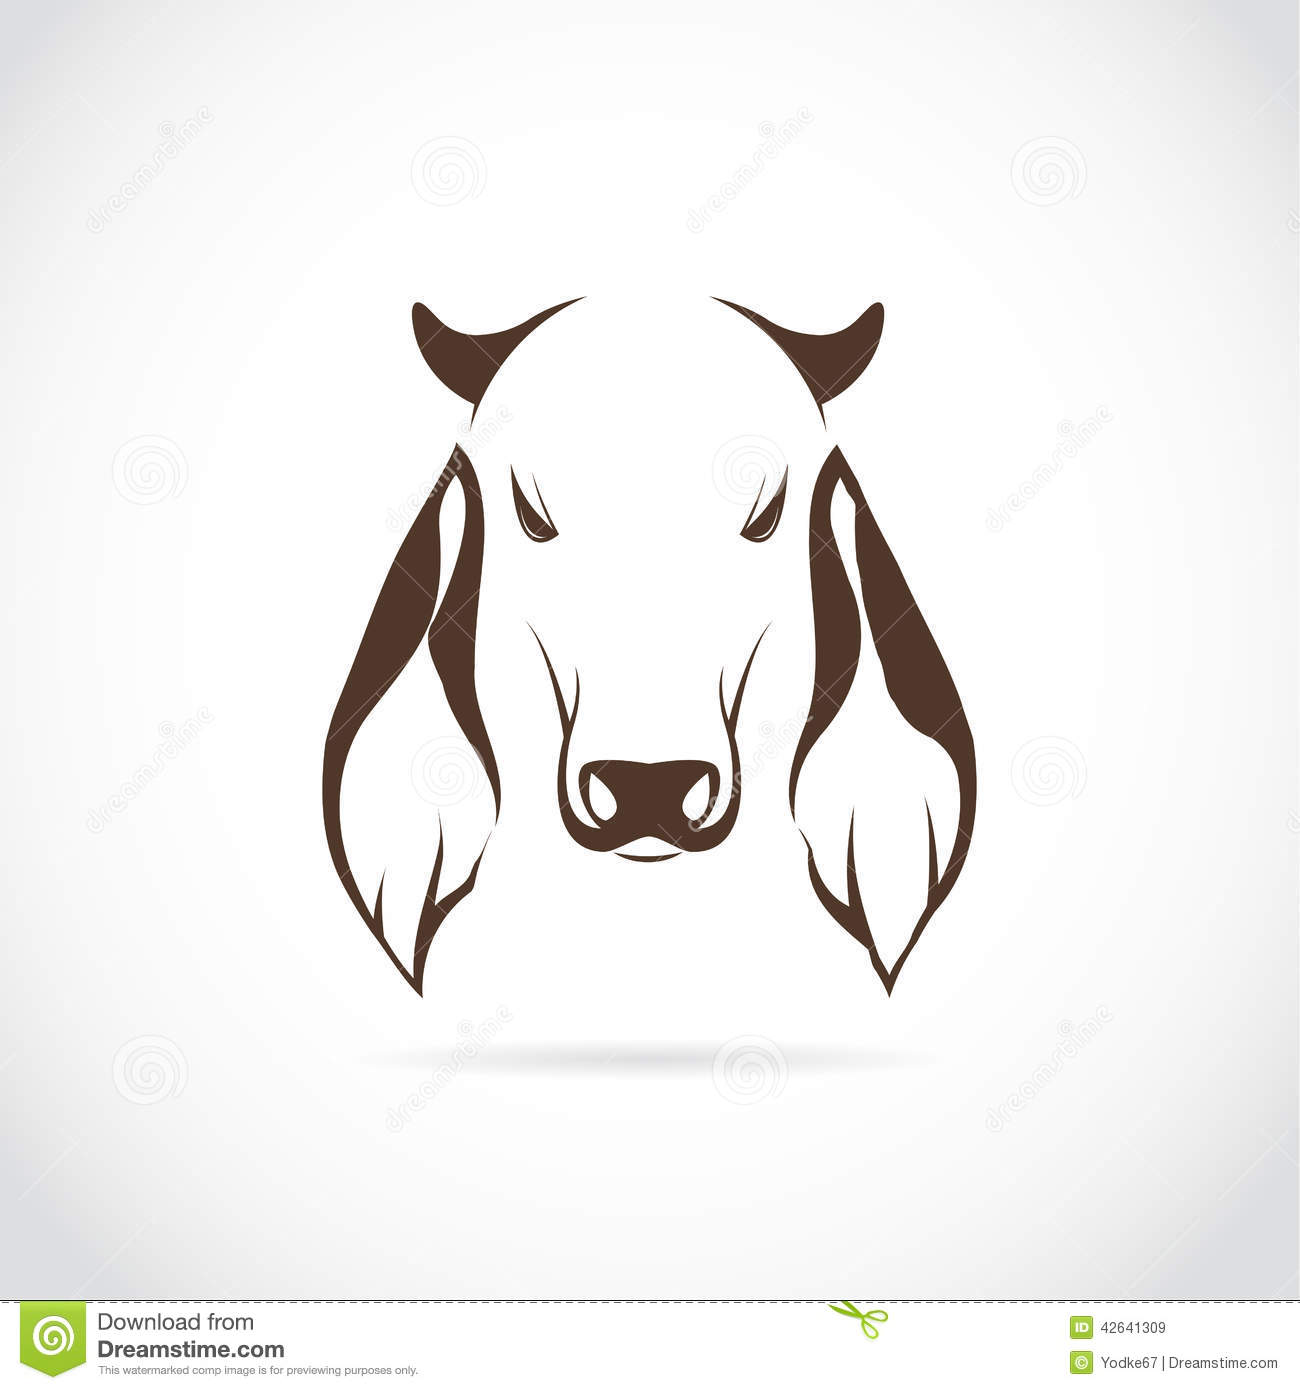 Vector Image Of Cow Head Stock Vector. Illustration Of